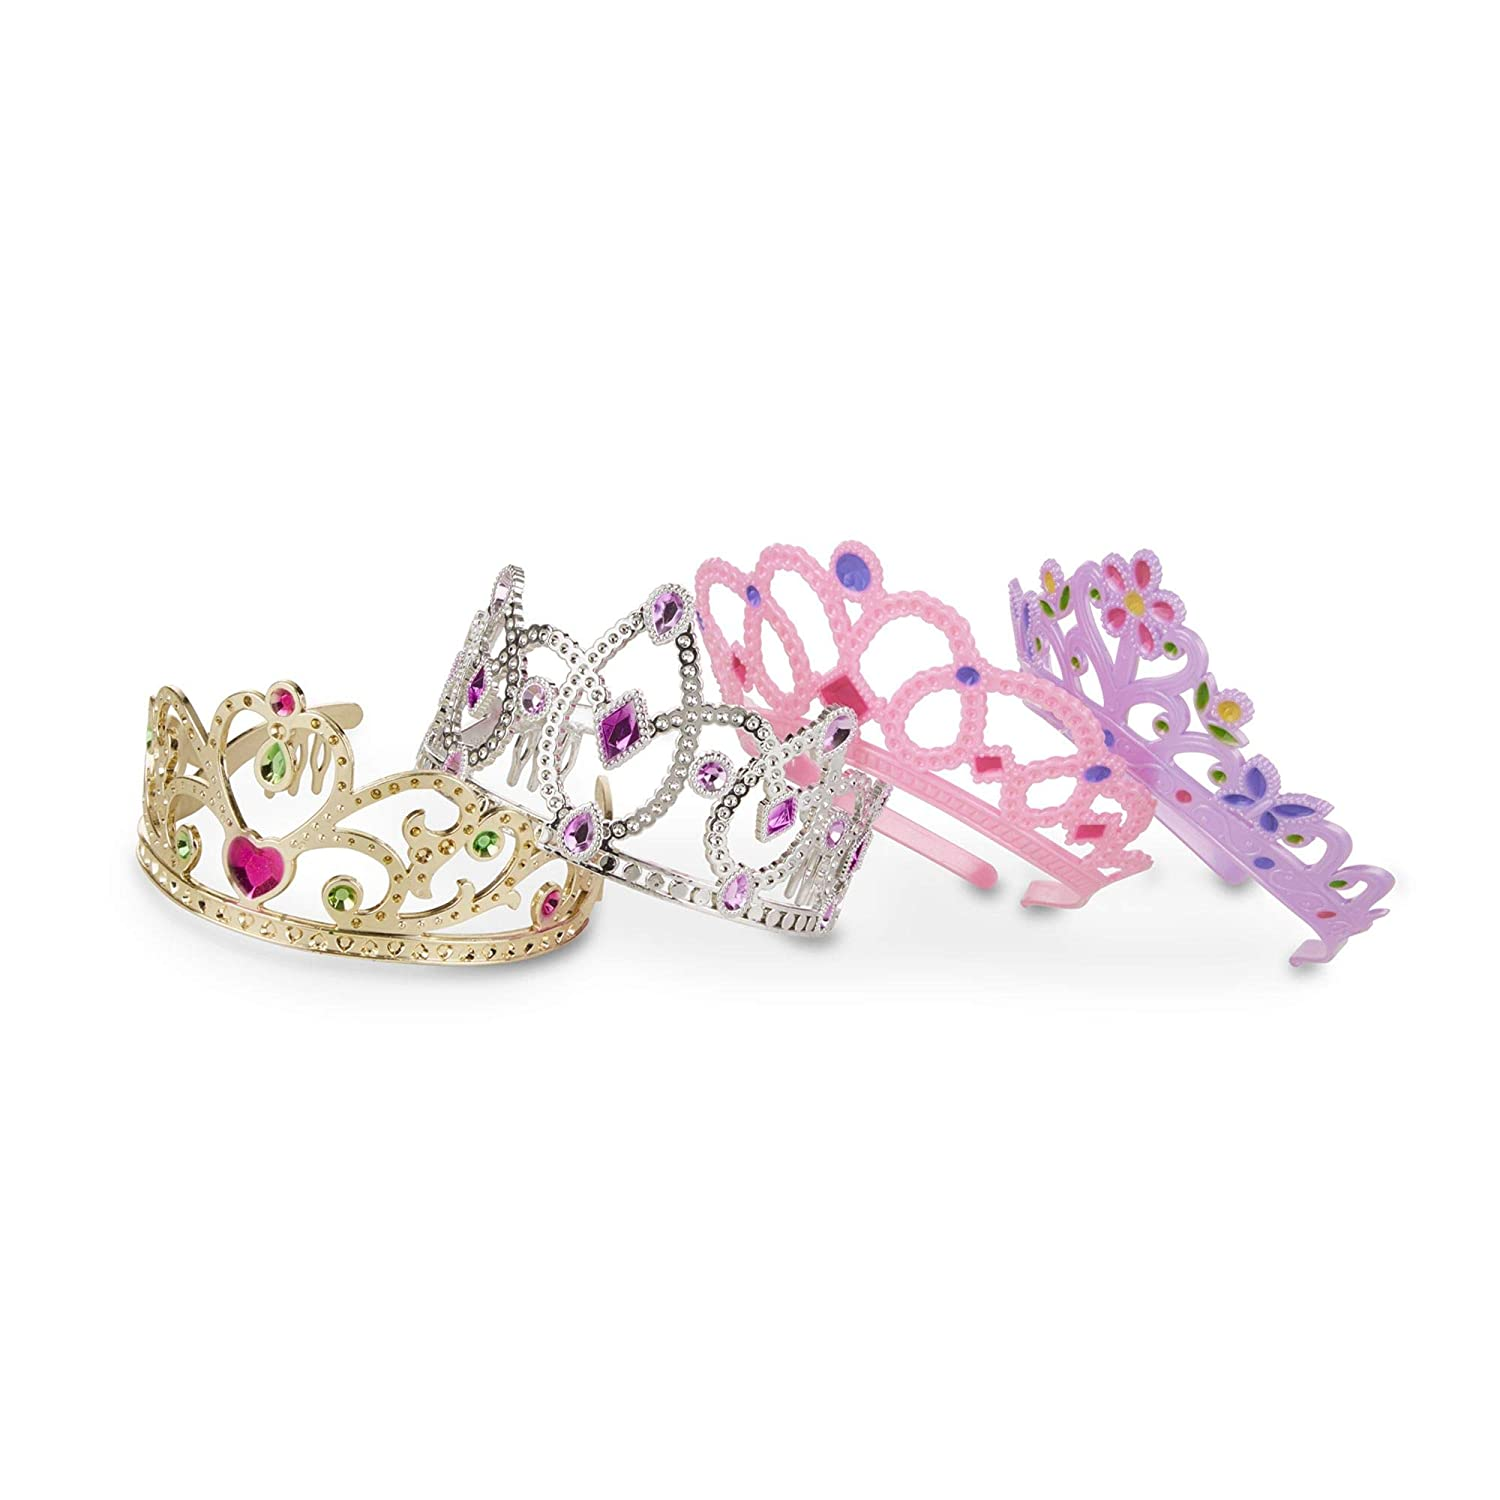 "Melissa & Doug Role-Play Collection Crown Jewels Tiaras, Pretend Play, Durable Construction, 4 Dress-Up Tiaras and Crowns, 12"" H x 8"" W x 5"" L"